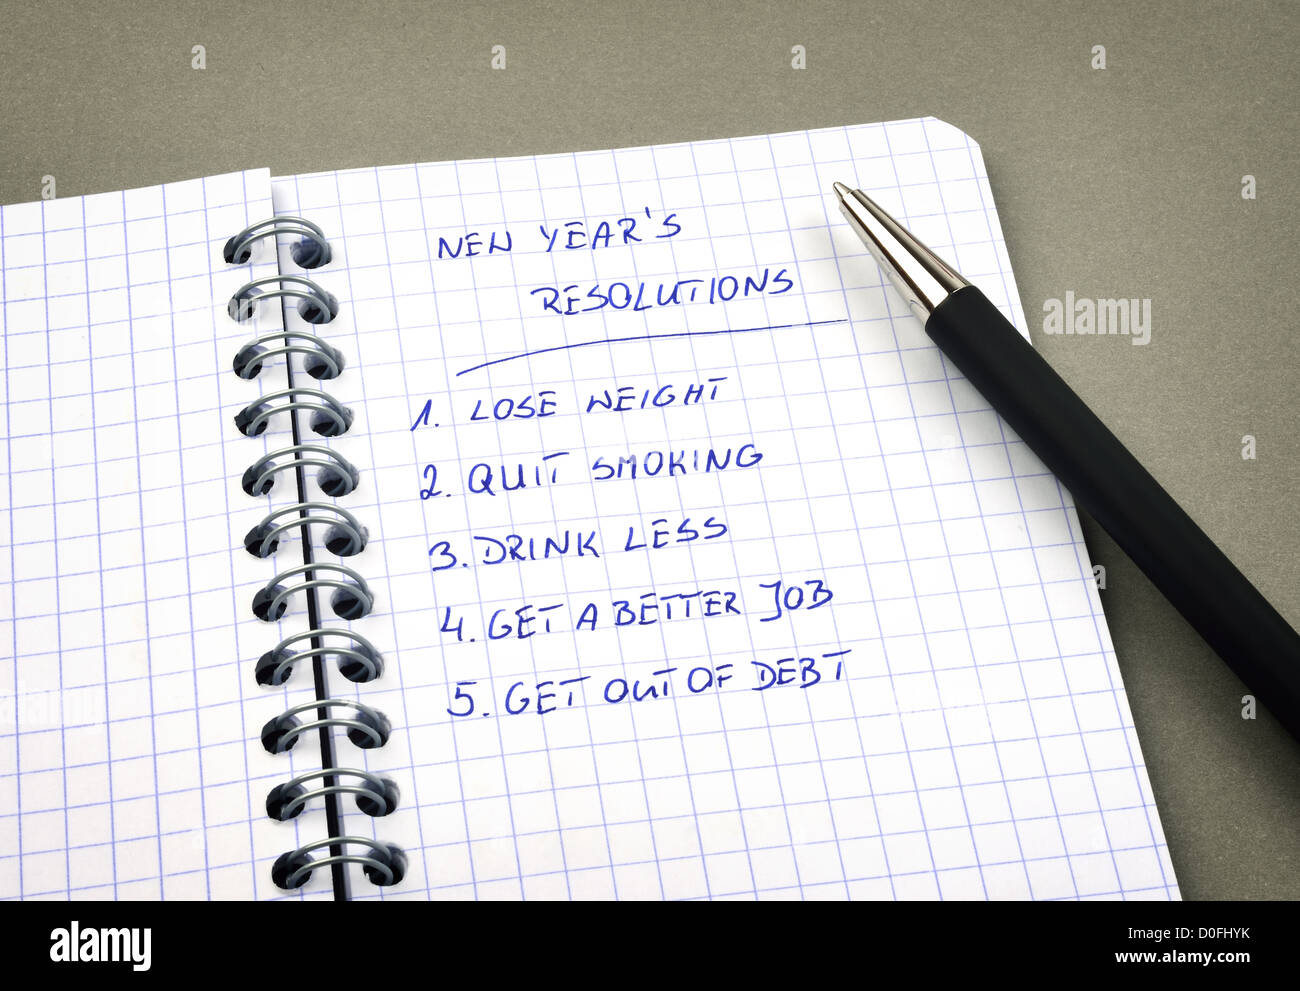 New Year's resolutions listed in notepad - Stock Image